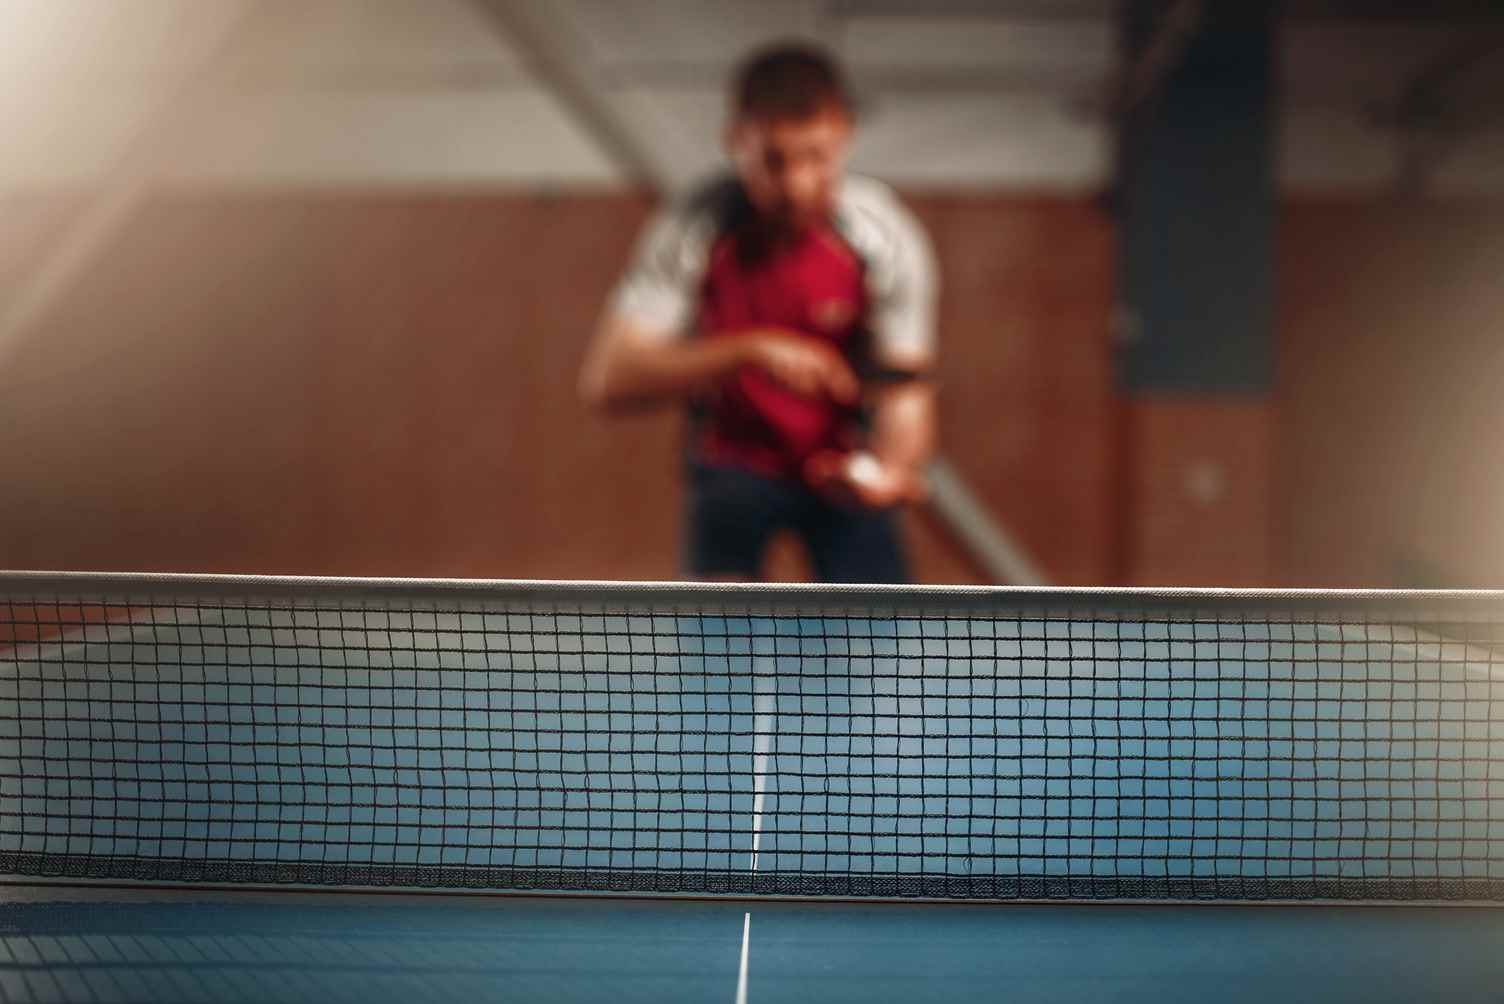 Table Tennis Net : How To Set Up A Table-Tennis Net?